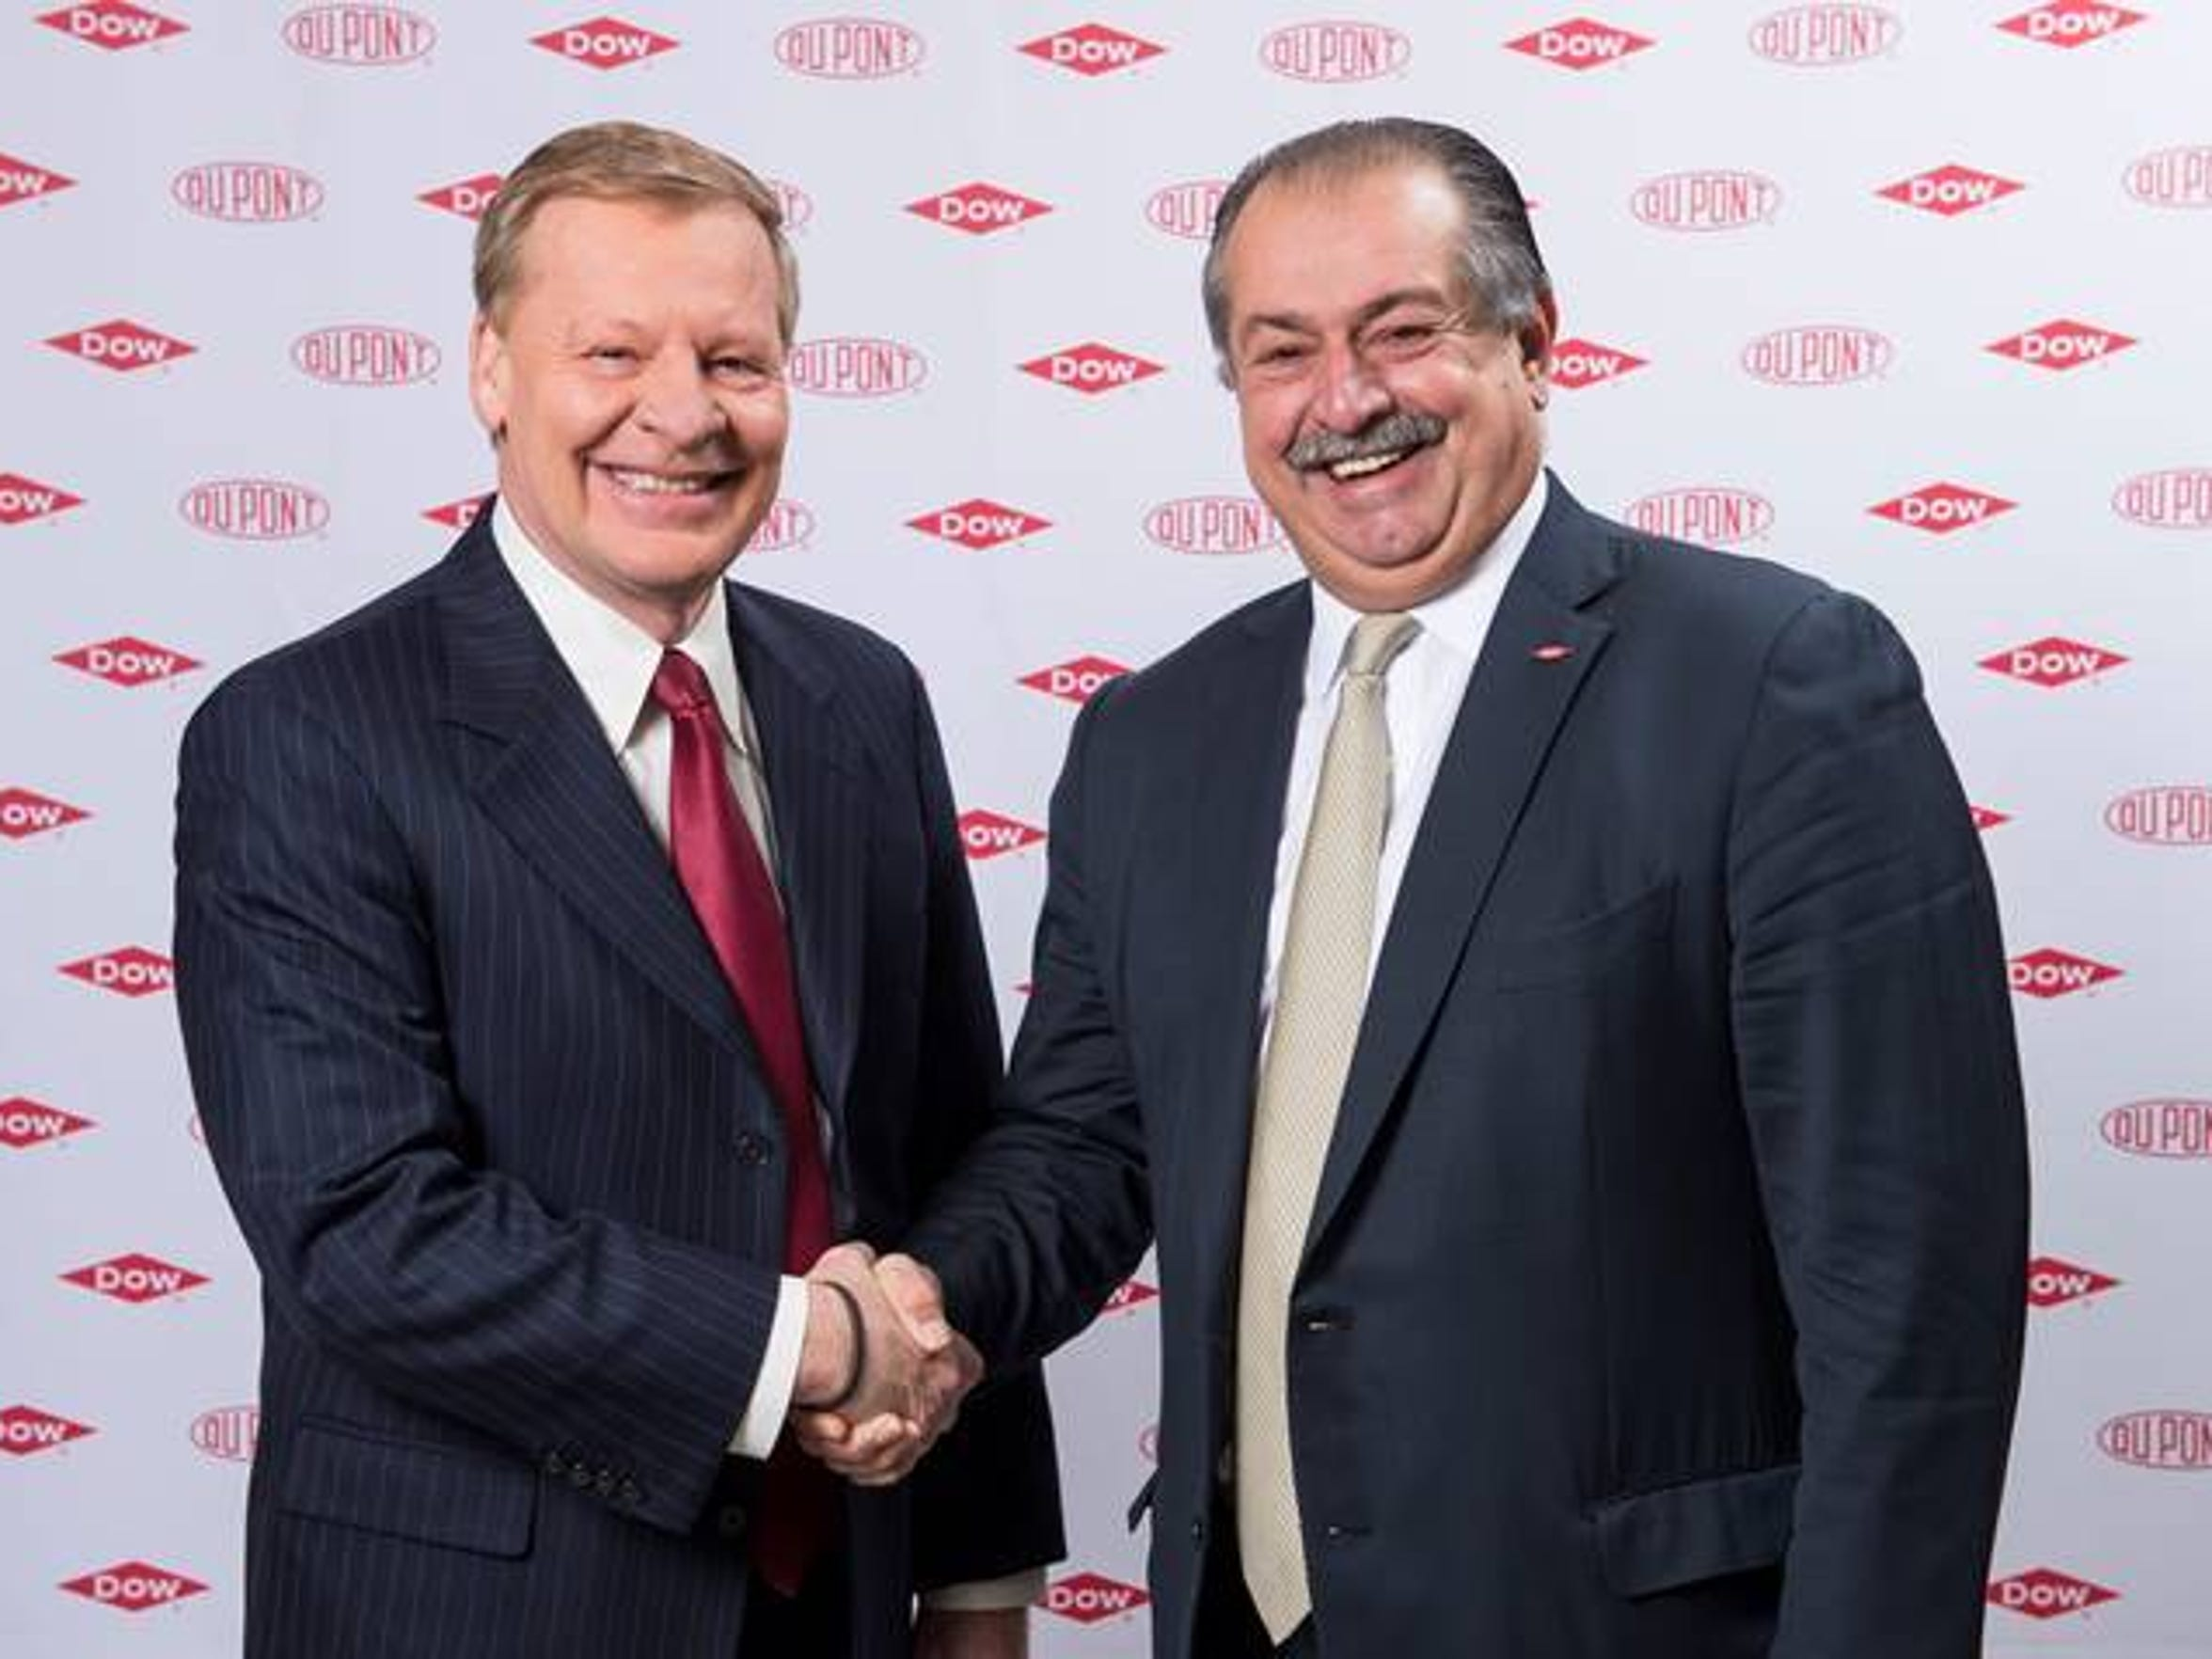 DuPont CEO Ed Breen (left) shakes the hand of The Dow Chemical Co. CEO Andrew Liveras to celebrate a merger between the two companies.